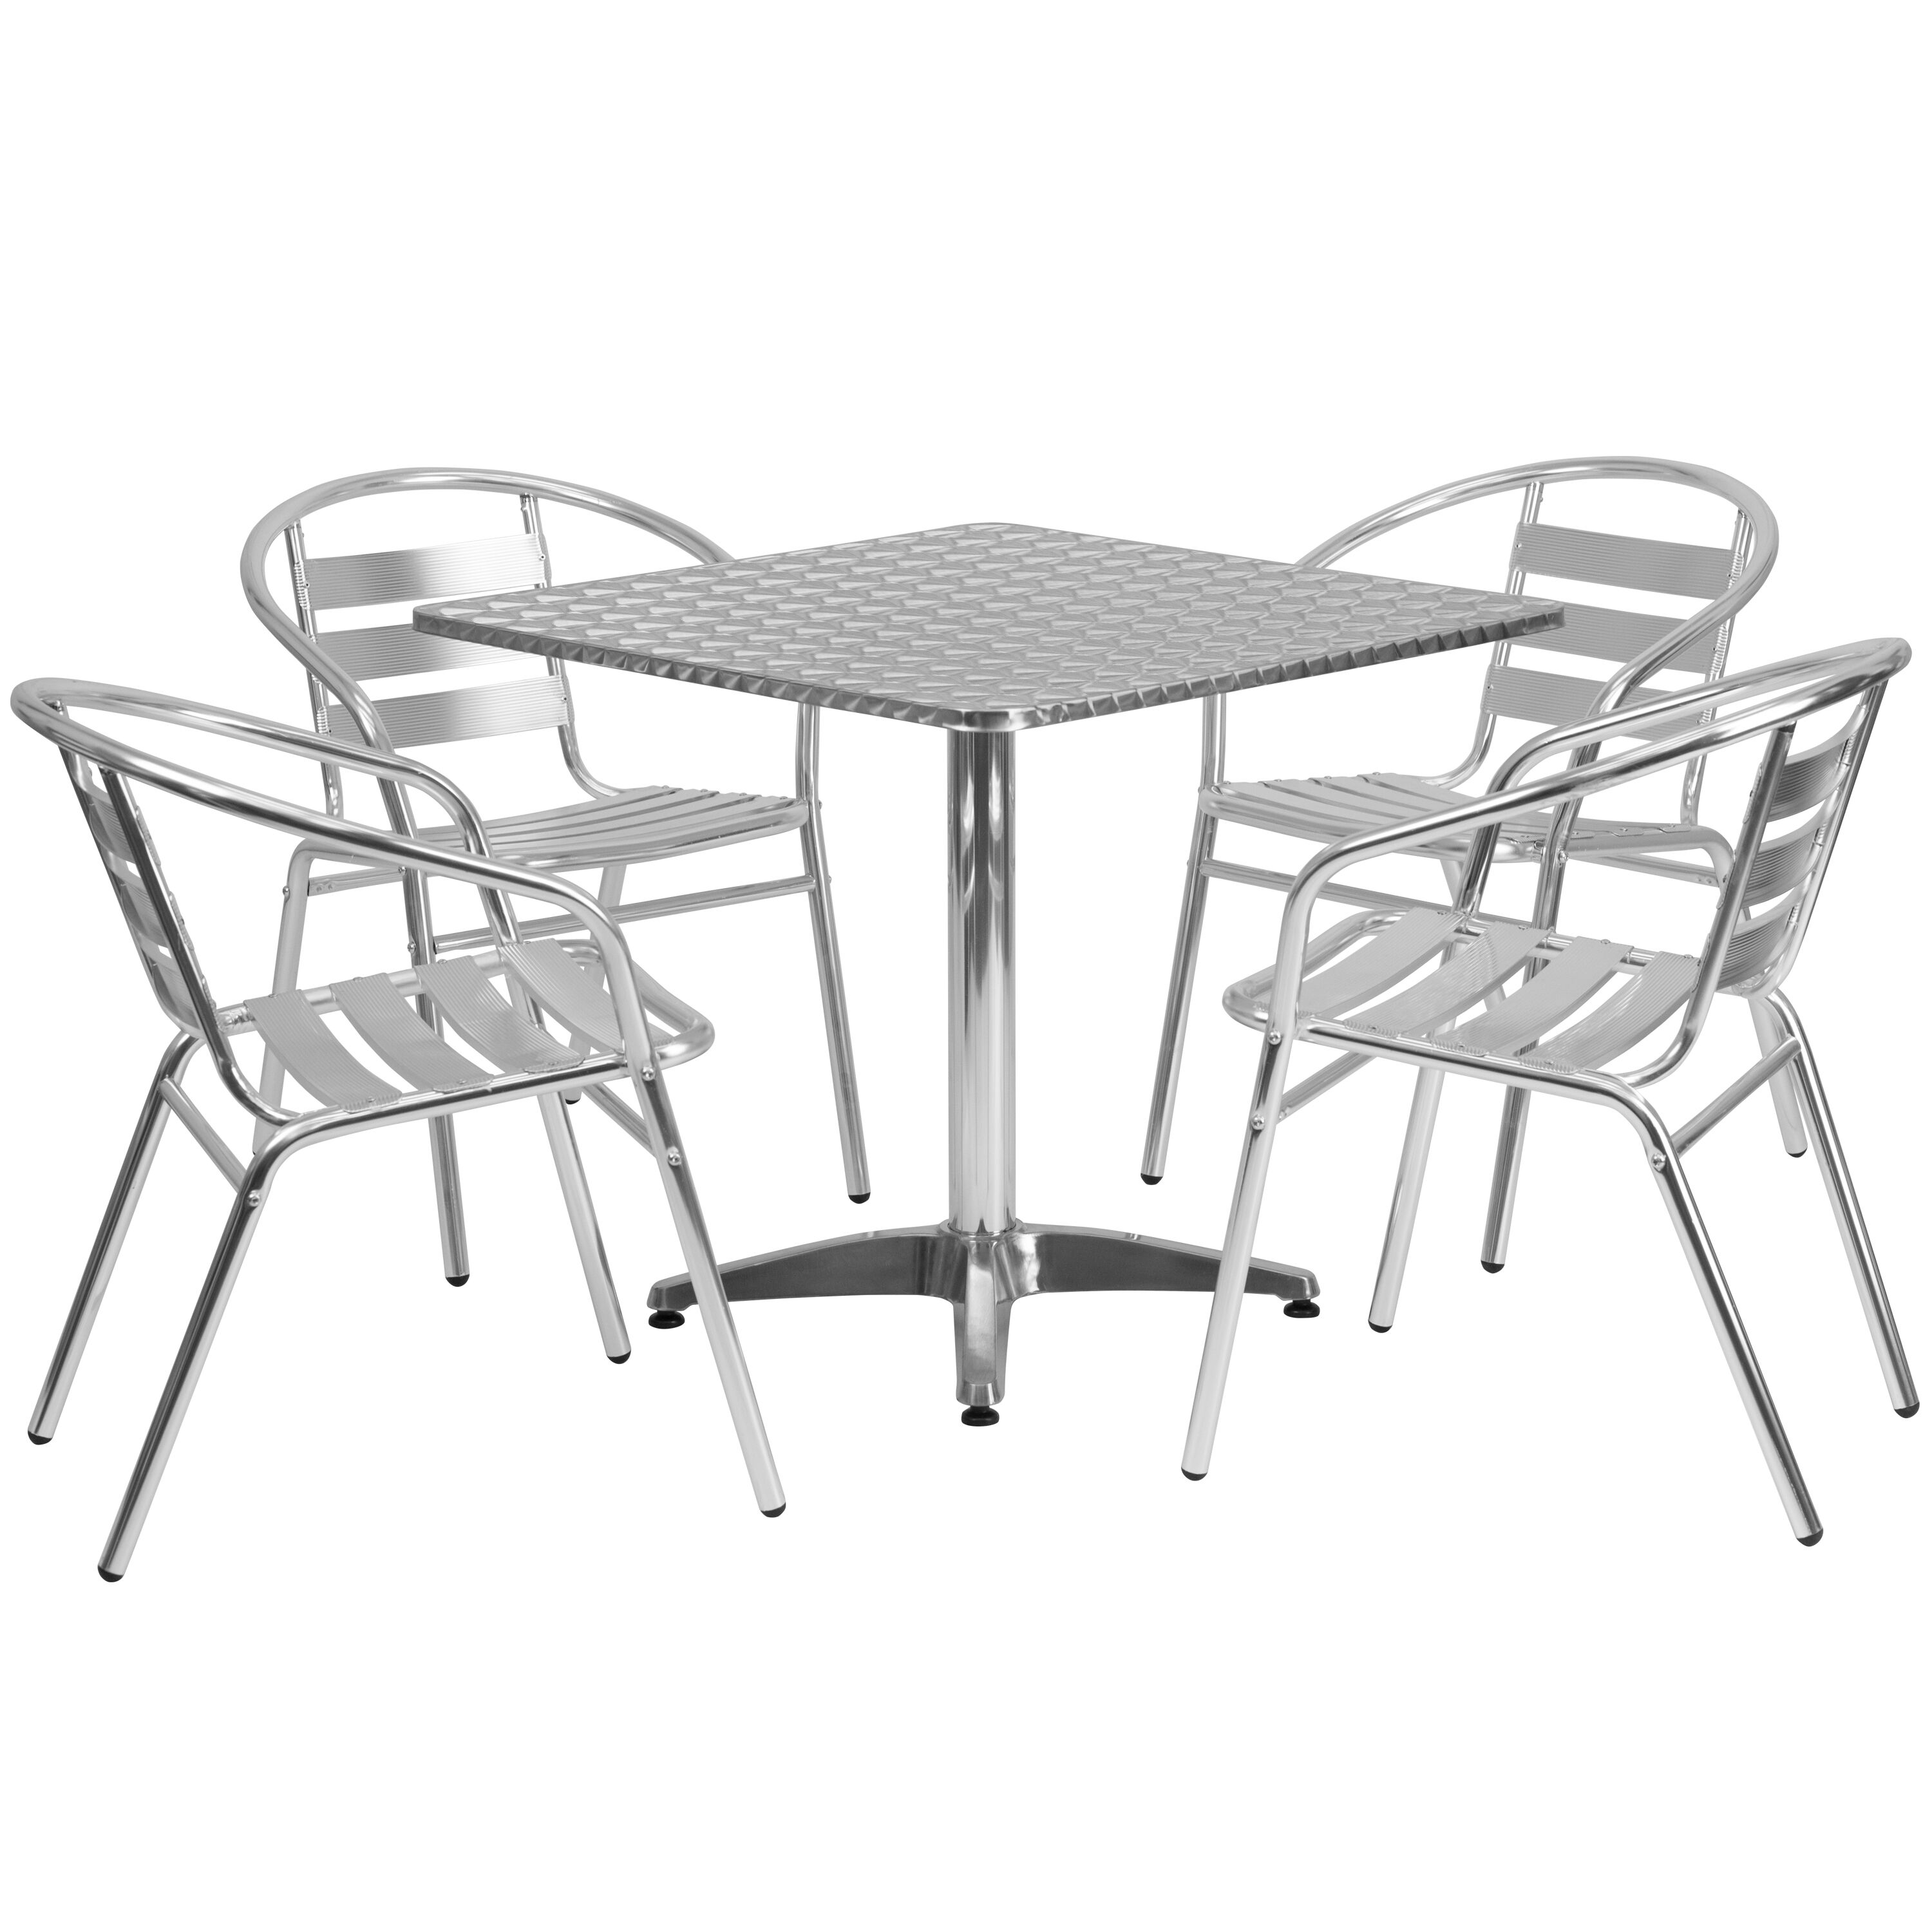 Outdoor Table And Chair Set 31 5 Square Aluminum Indoor Outdoor Table Set With 4 Slat Back Chairs